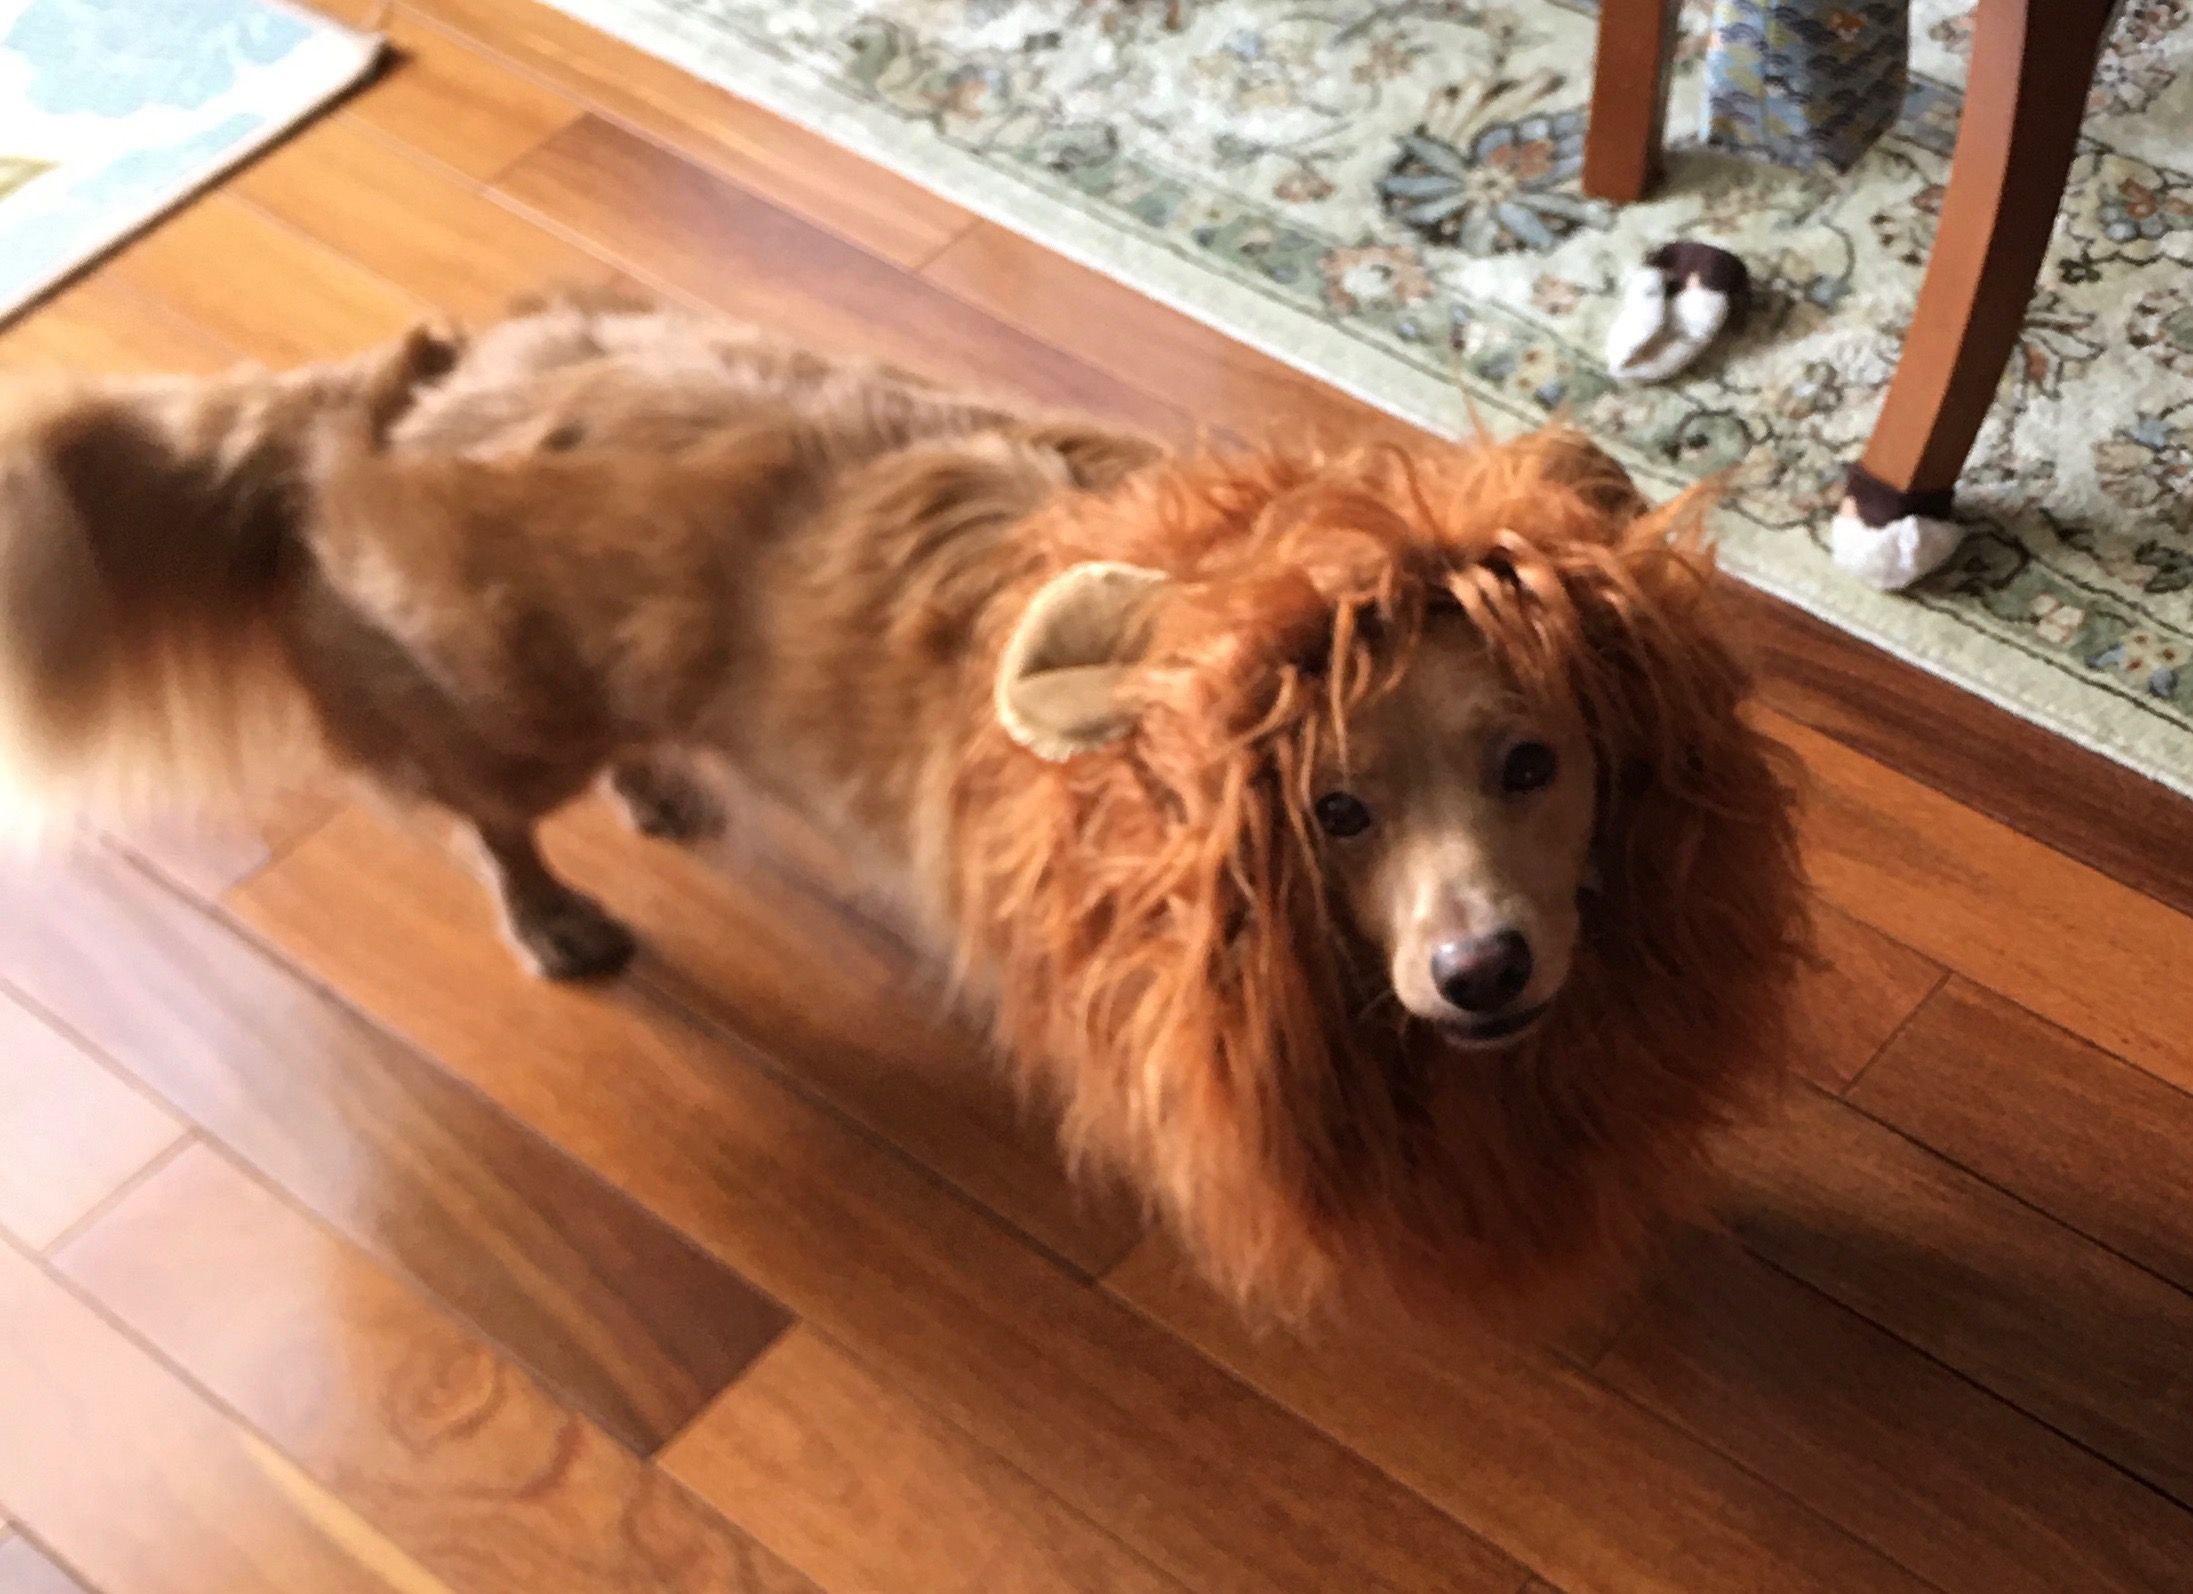 Chip as a lion